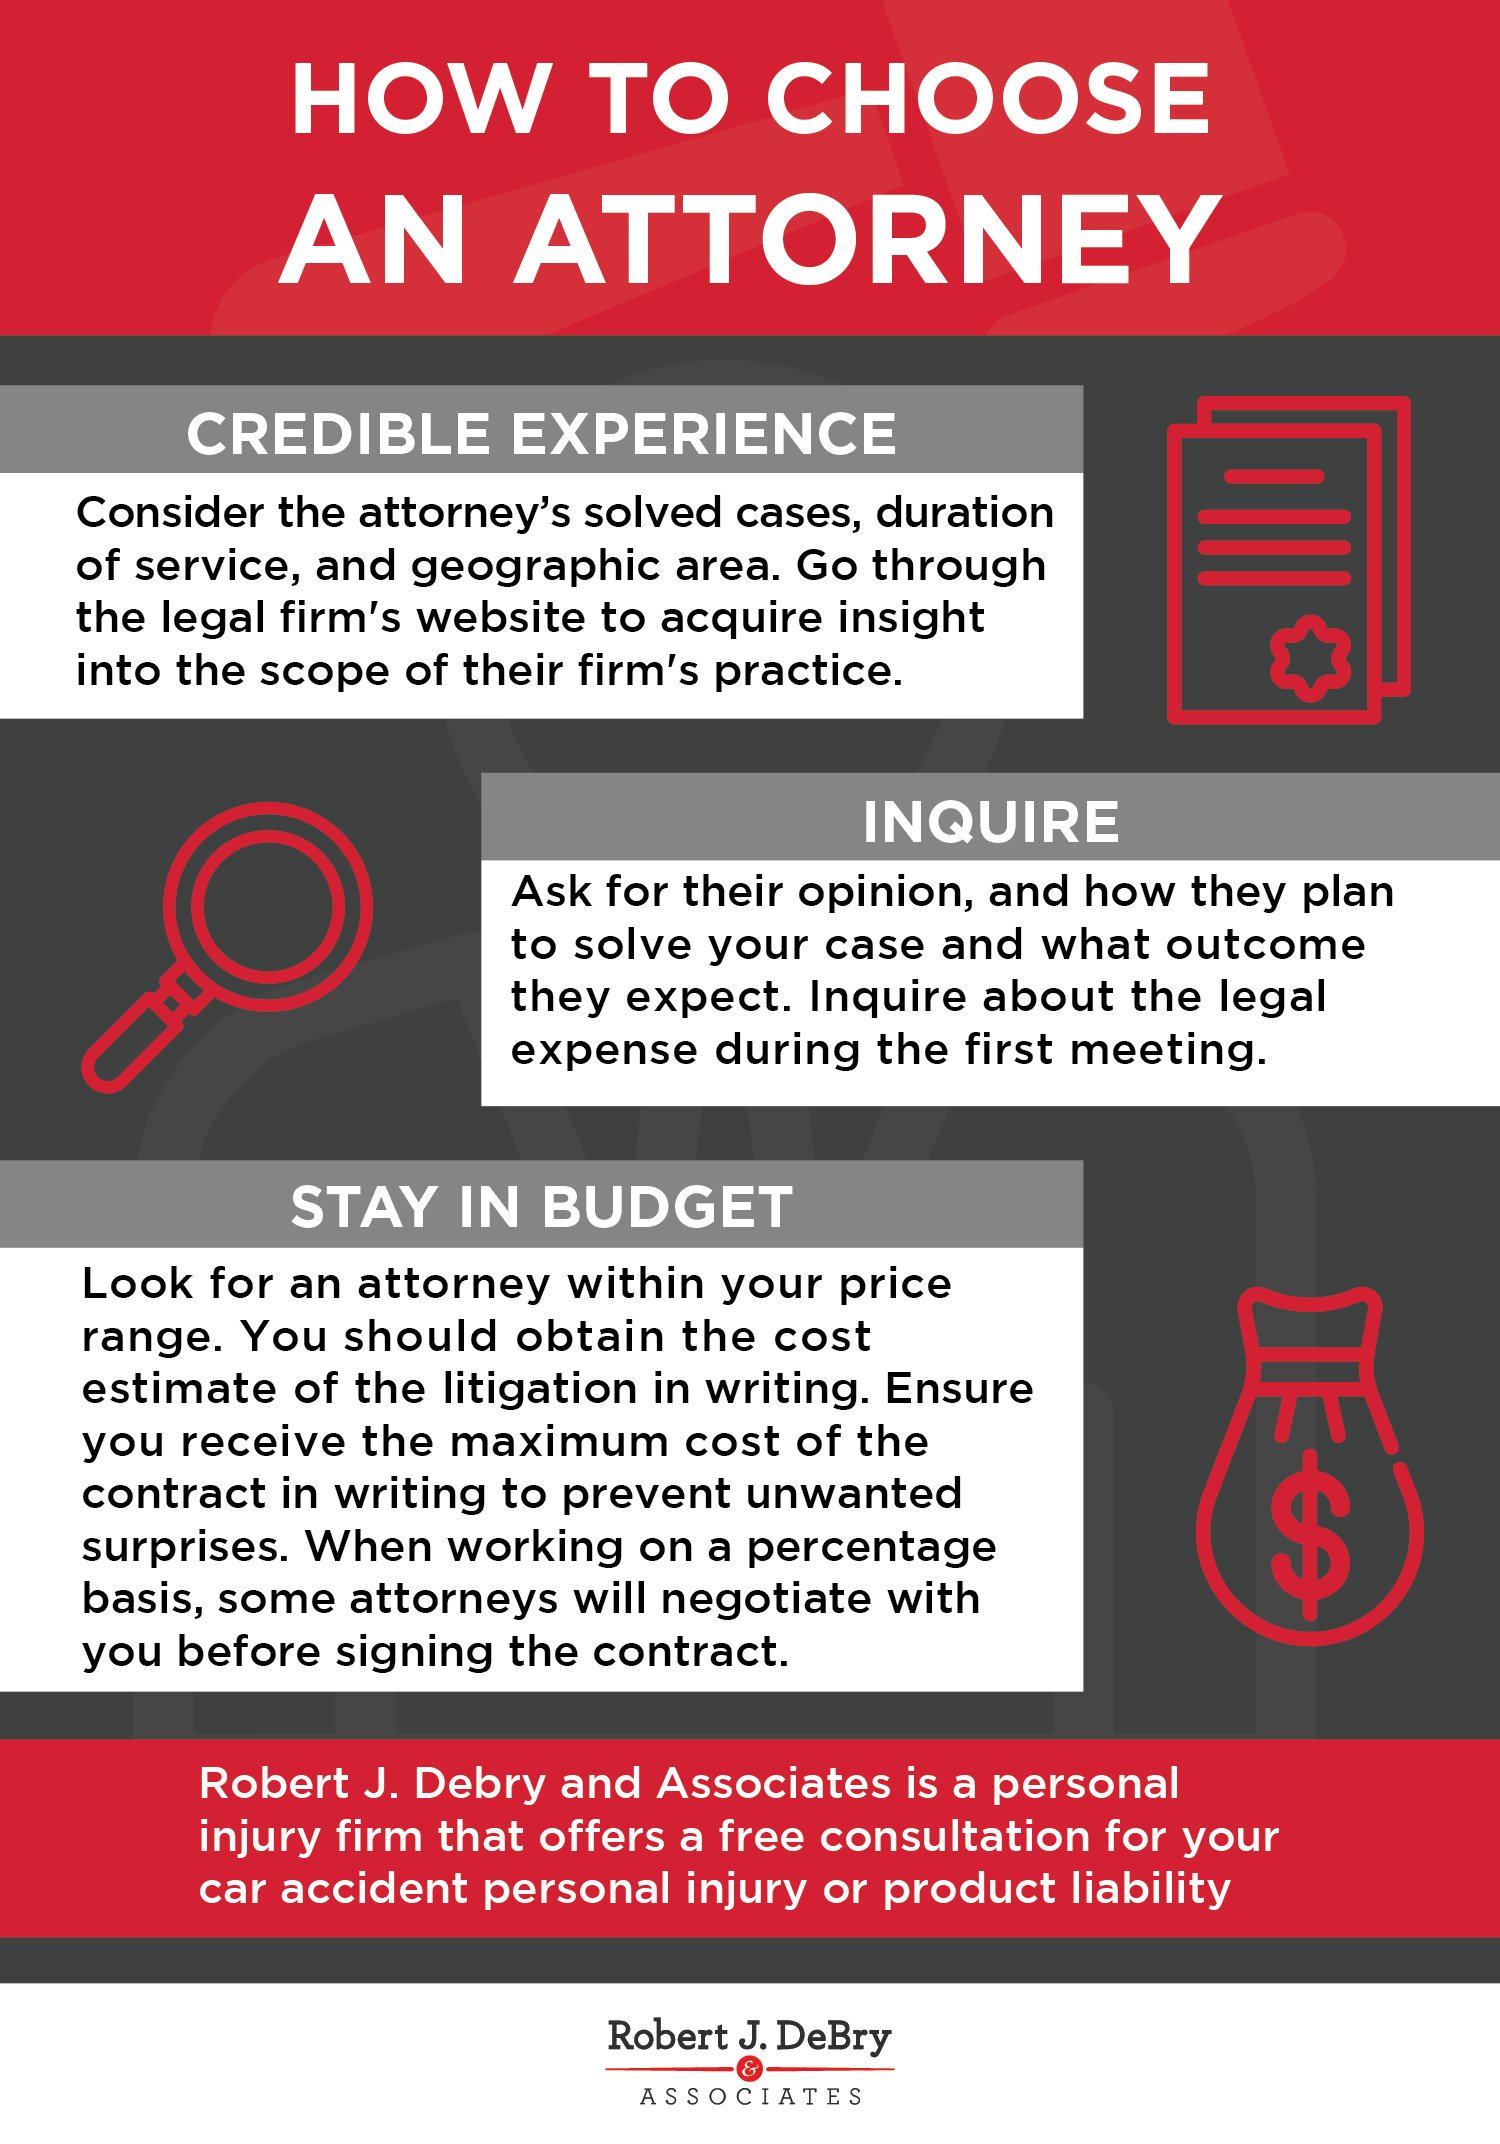 How to Choose Your Personal Injury Attorney Infographic